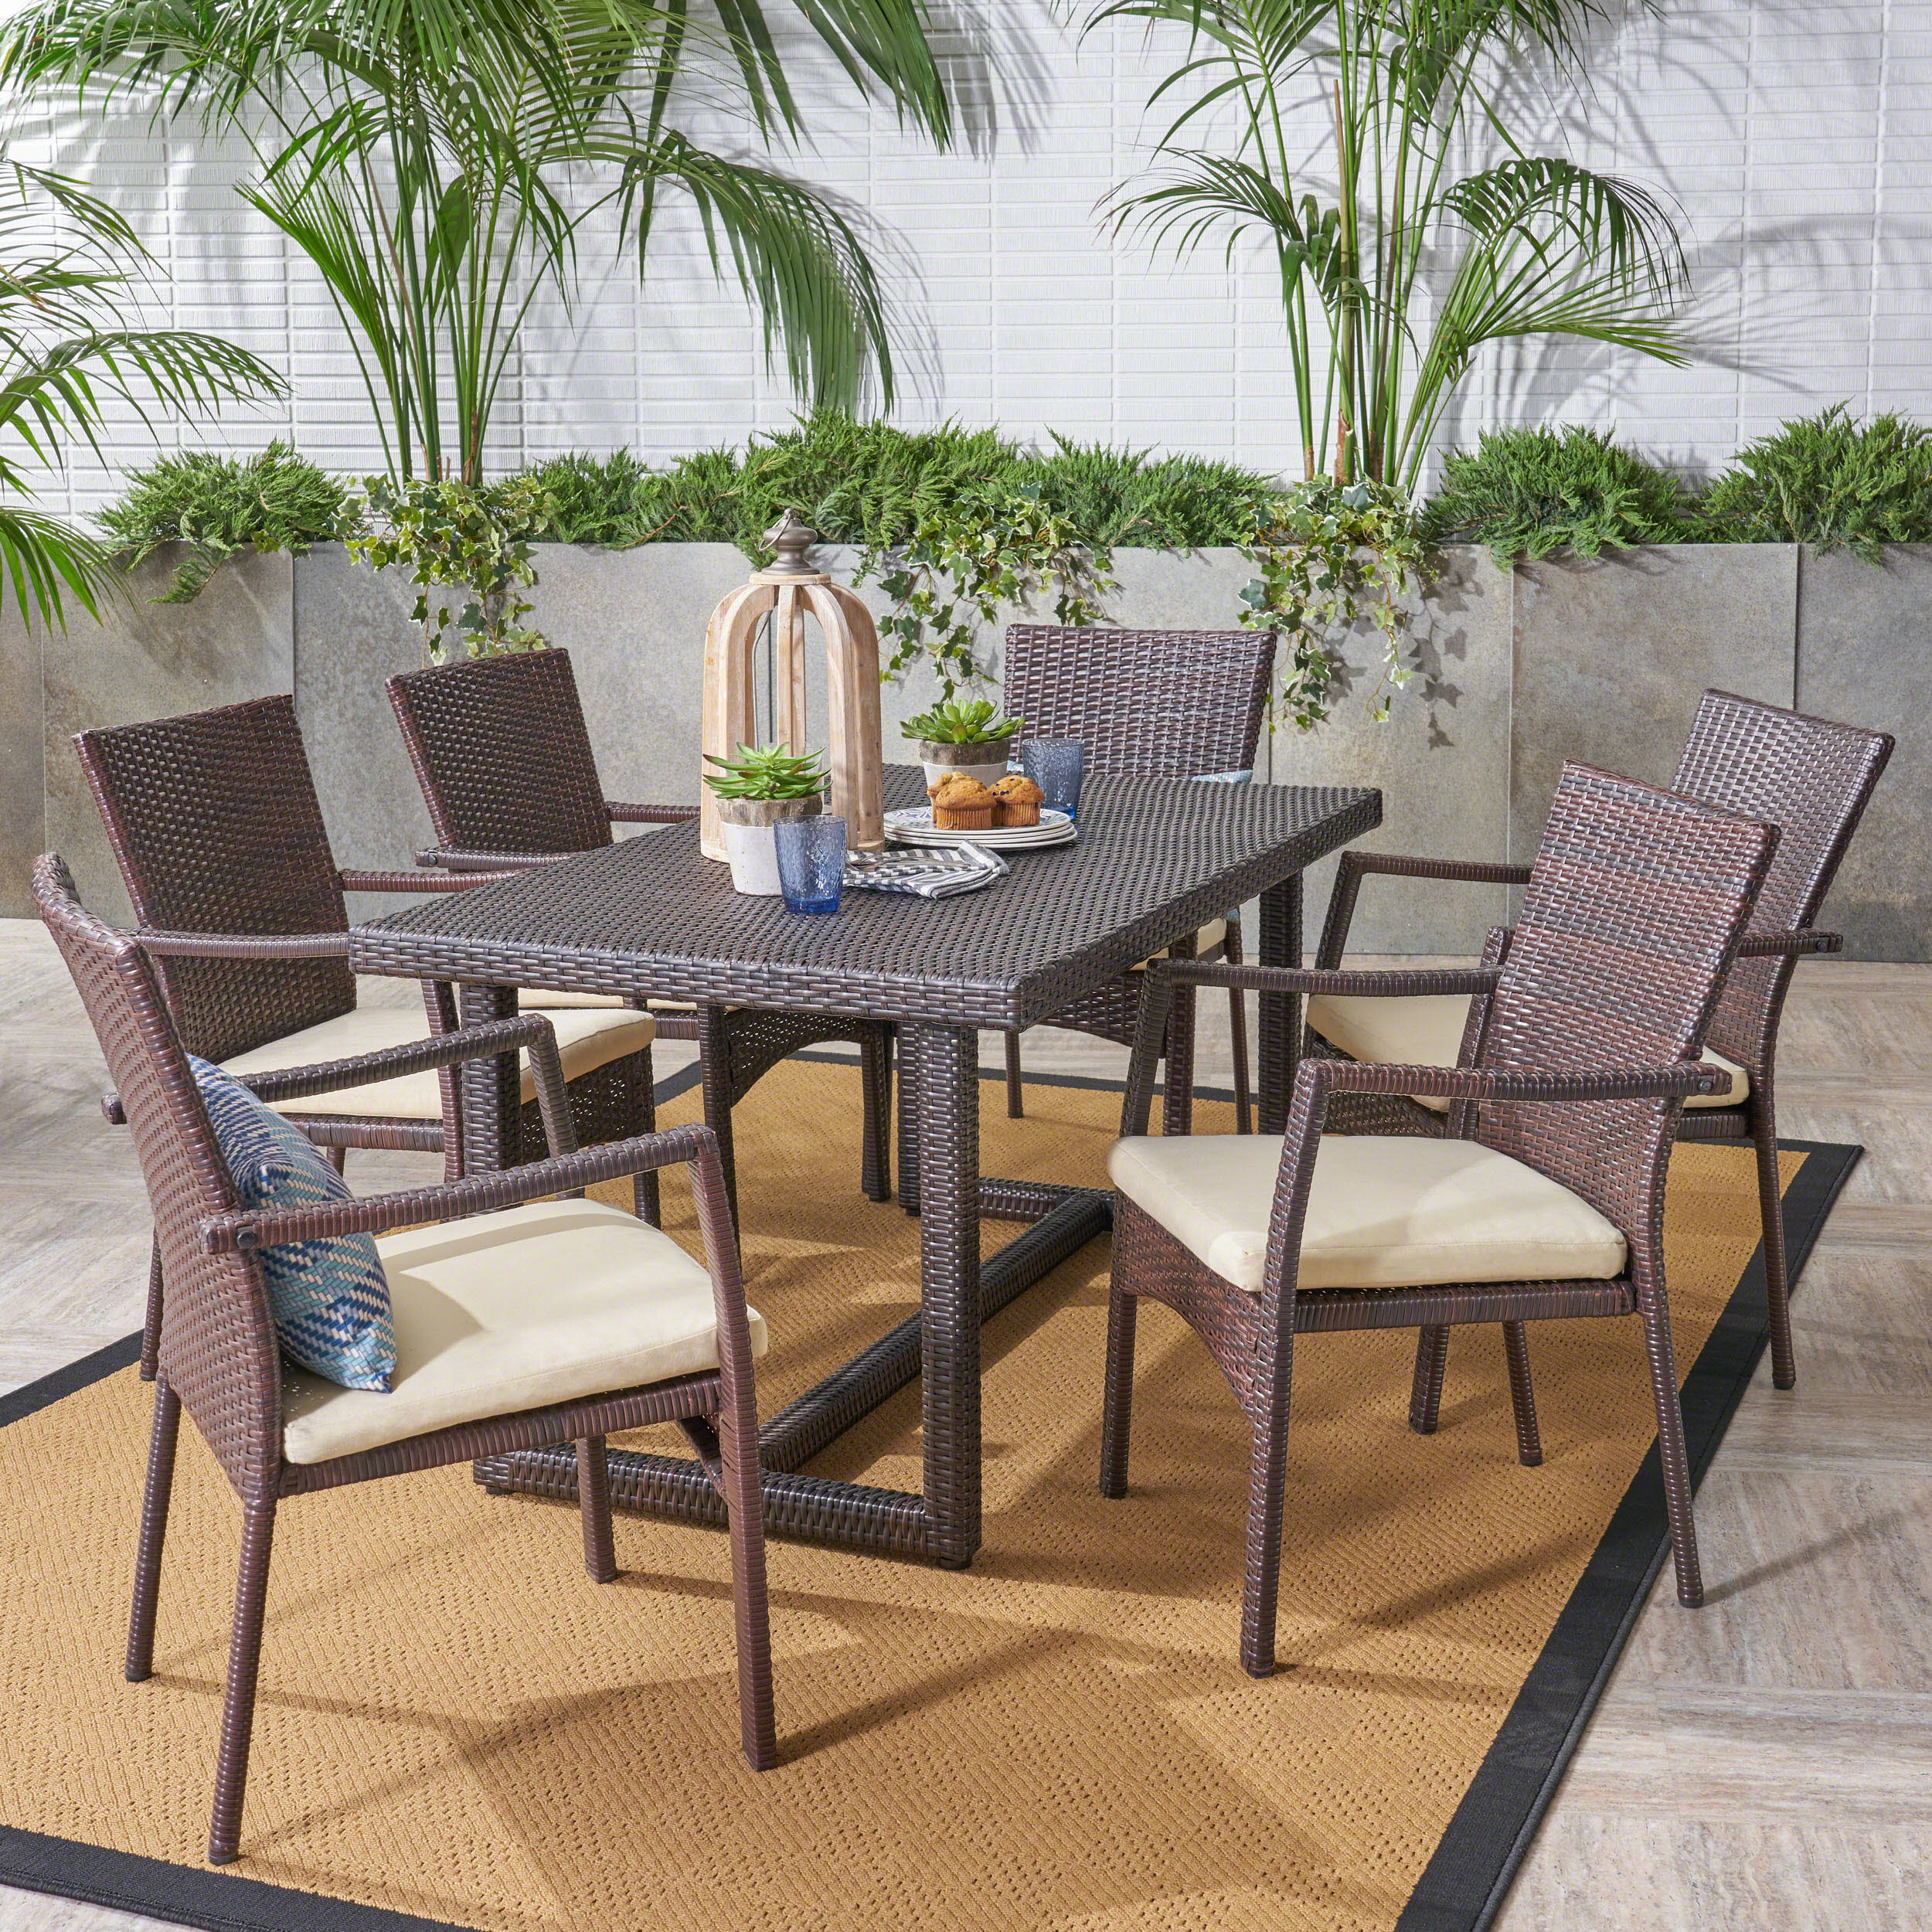 Able Outdoor Transitional 7 Piece Multi Brown Wicker Dining Set with Cushions